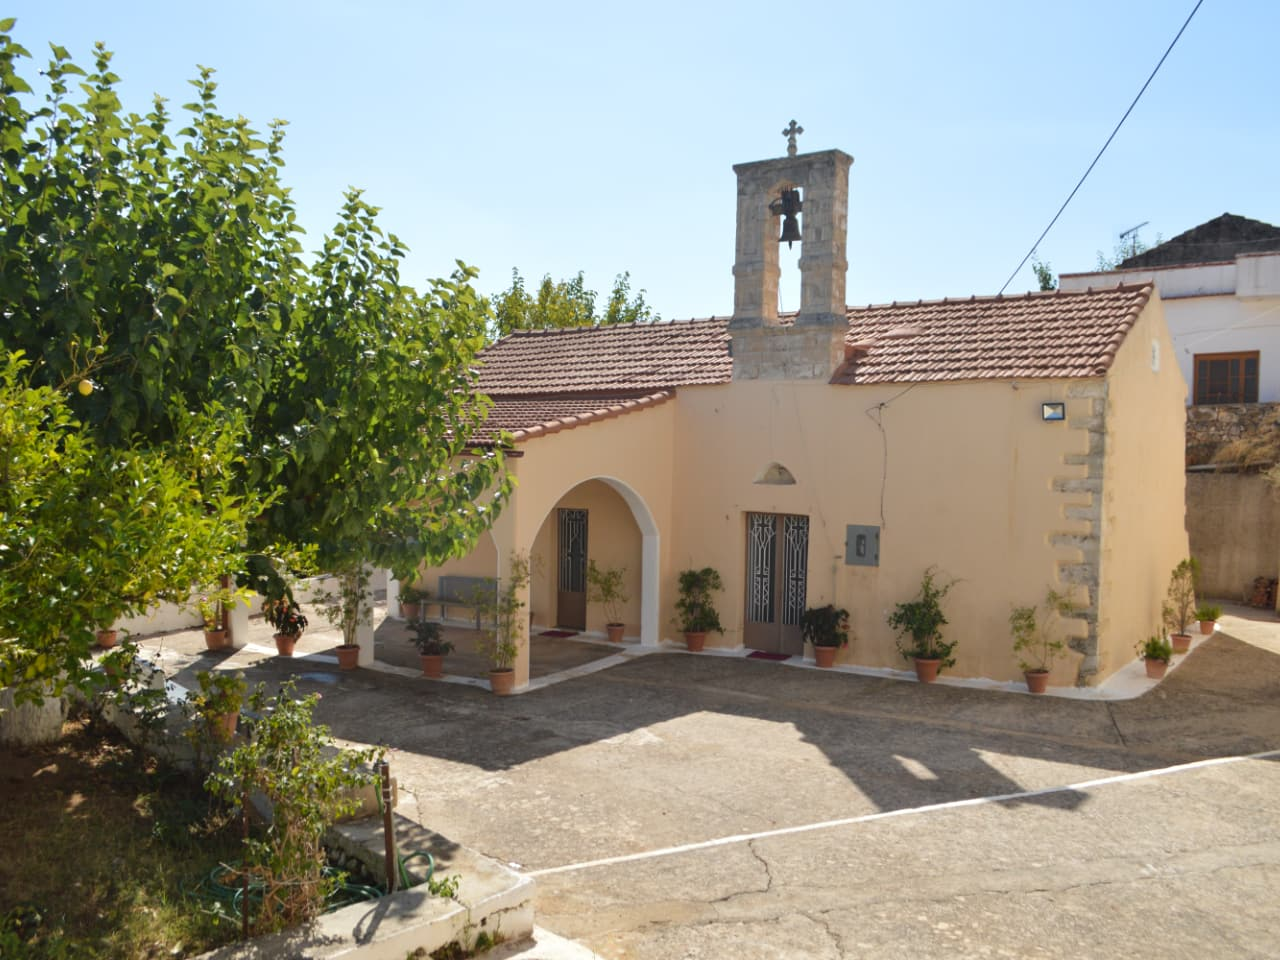 Hiking Tour In Picturesque Villages of Apokoronas, maheri village hiking tour, paidochori village hiking tour, neo chorio village hiking tour, apokoron villages best hiking tour, activities chania crete